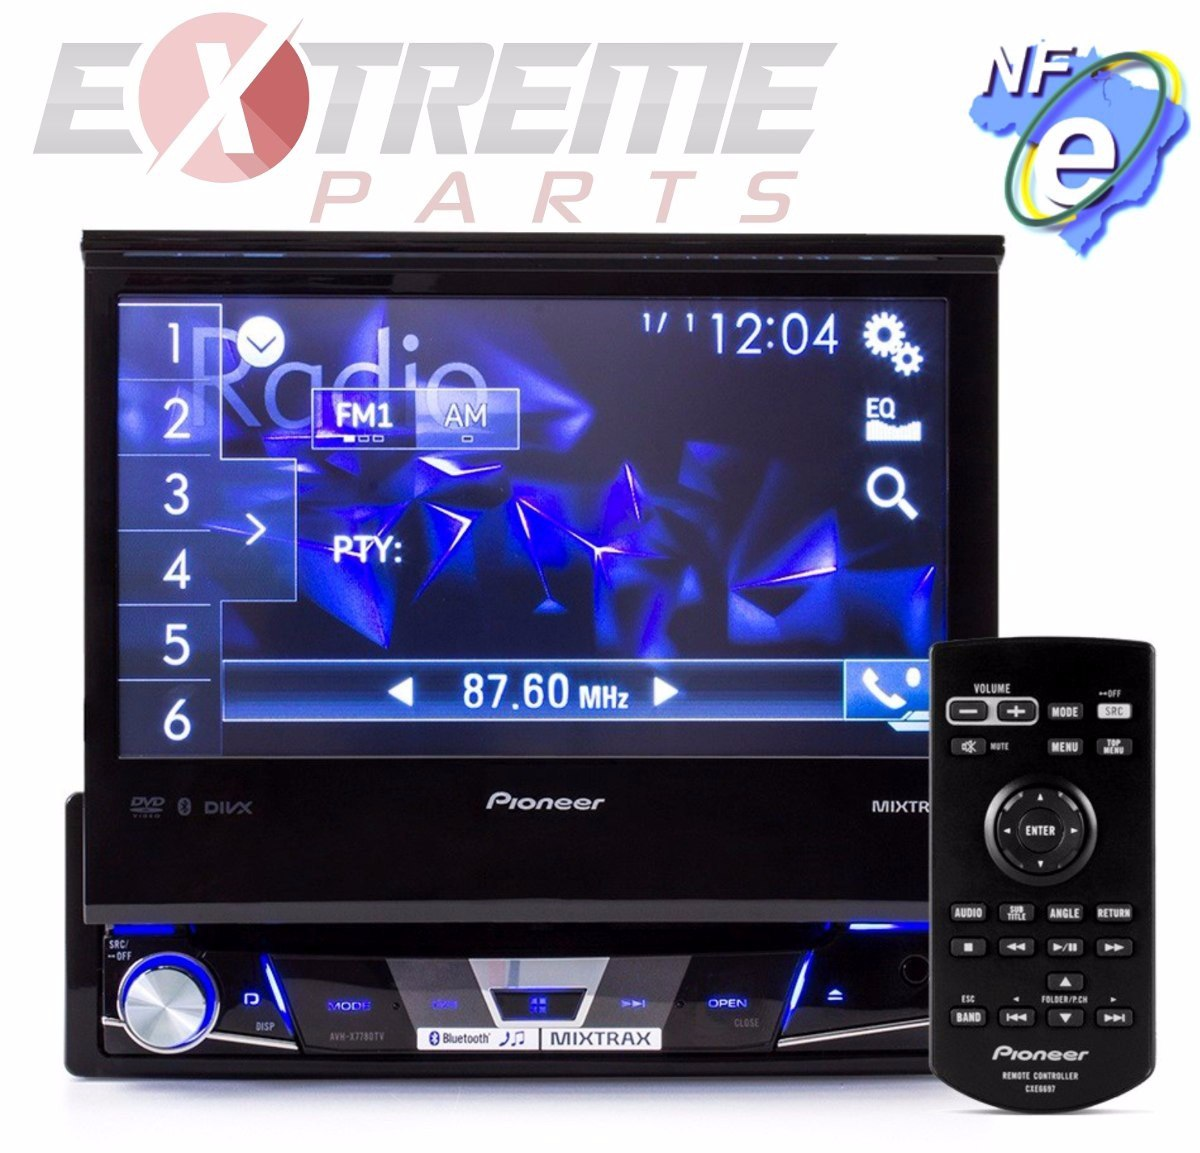 dvd-automotivo-pioneer-avhx-7780-tv-tela-retratil-multimidia-362101-MLB20285159395_042015-F.jpg